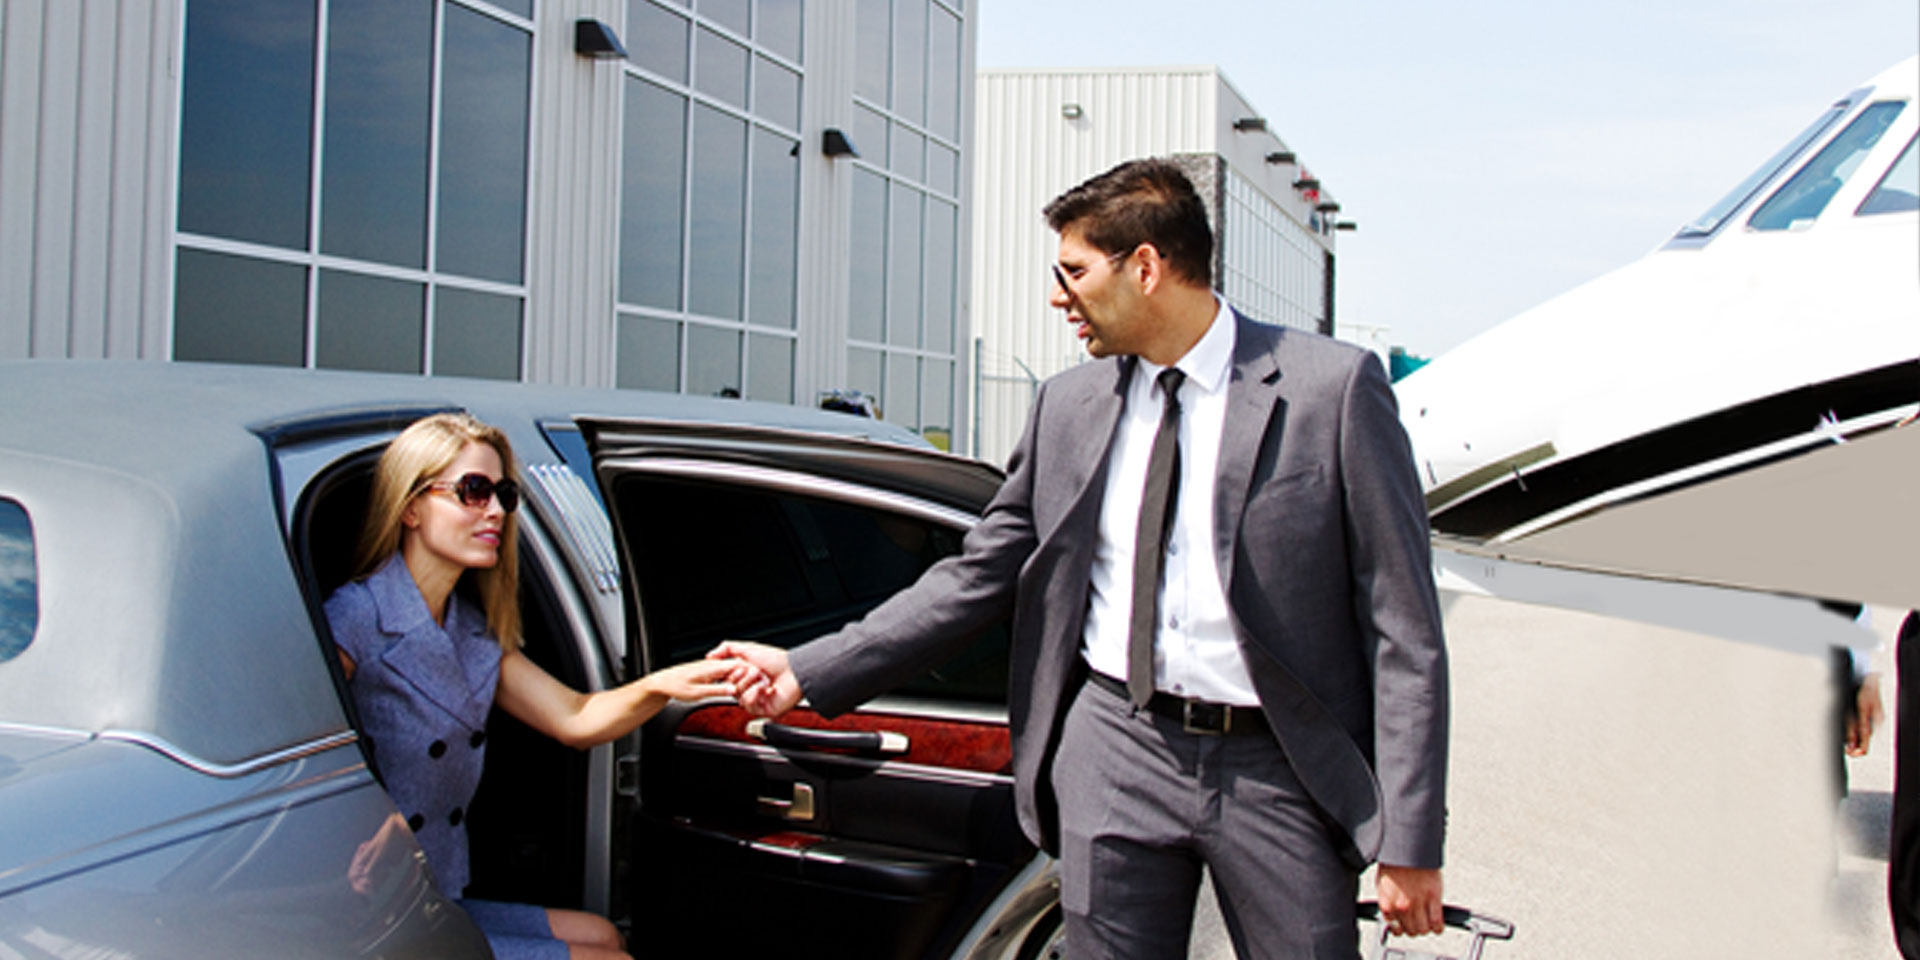 Luxury Airport Transportation Service